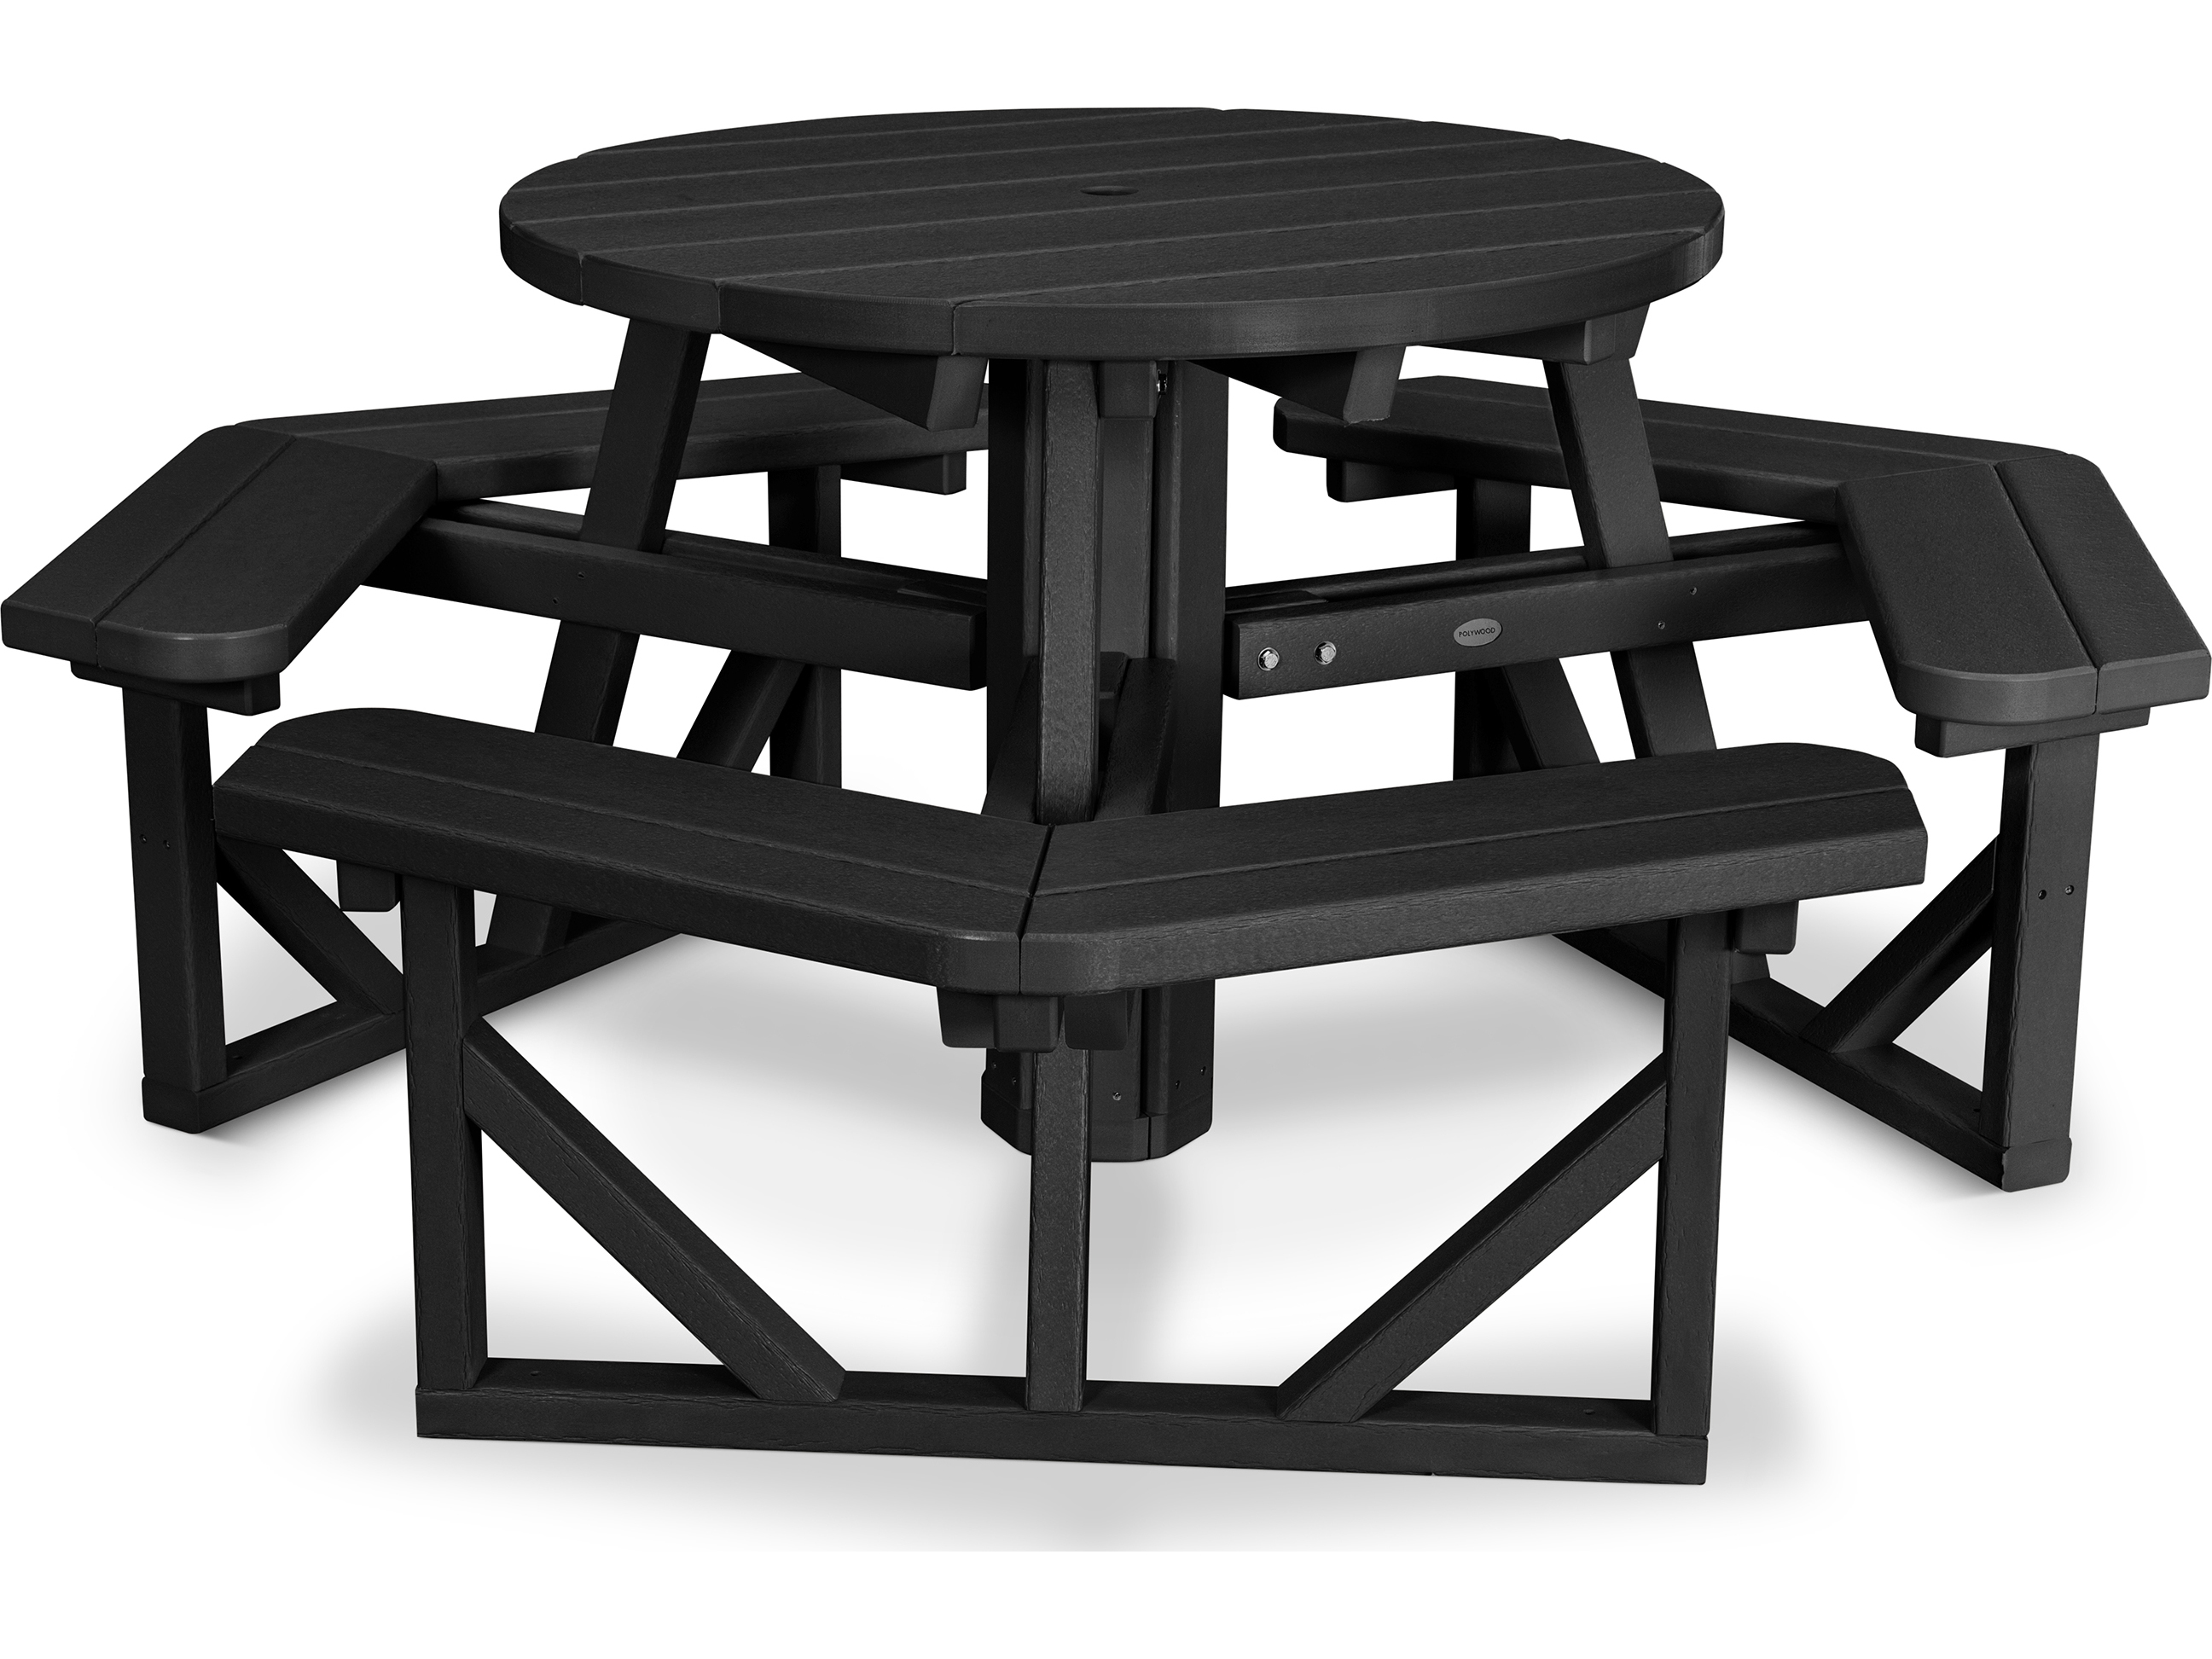 Hover Round Chairs Polywood Park Recycled Plastic 36 Round Picnic Table